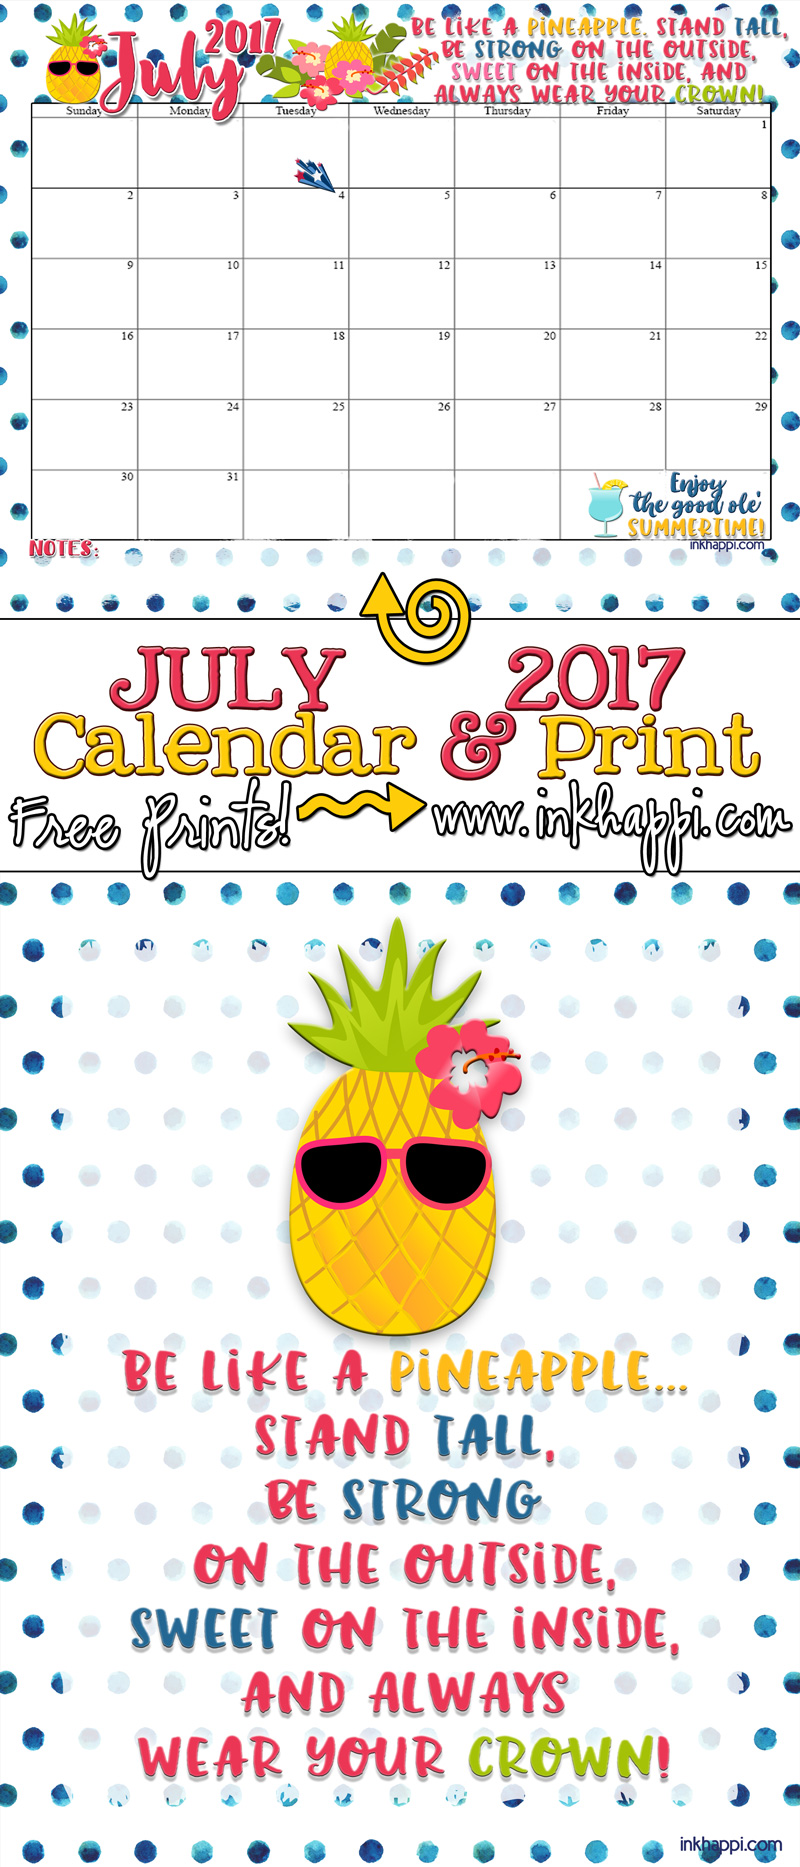 July 2017 Calendar Is All About What Pineapple Inkhappi